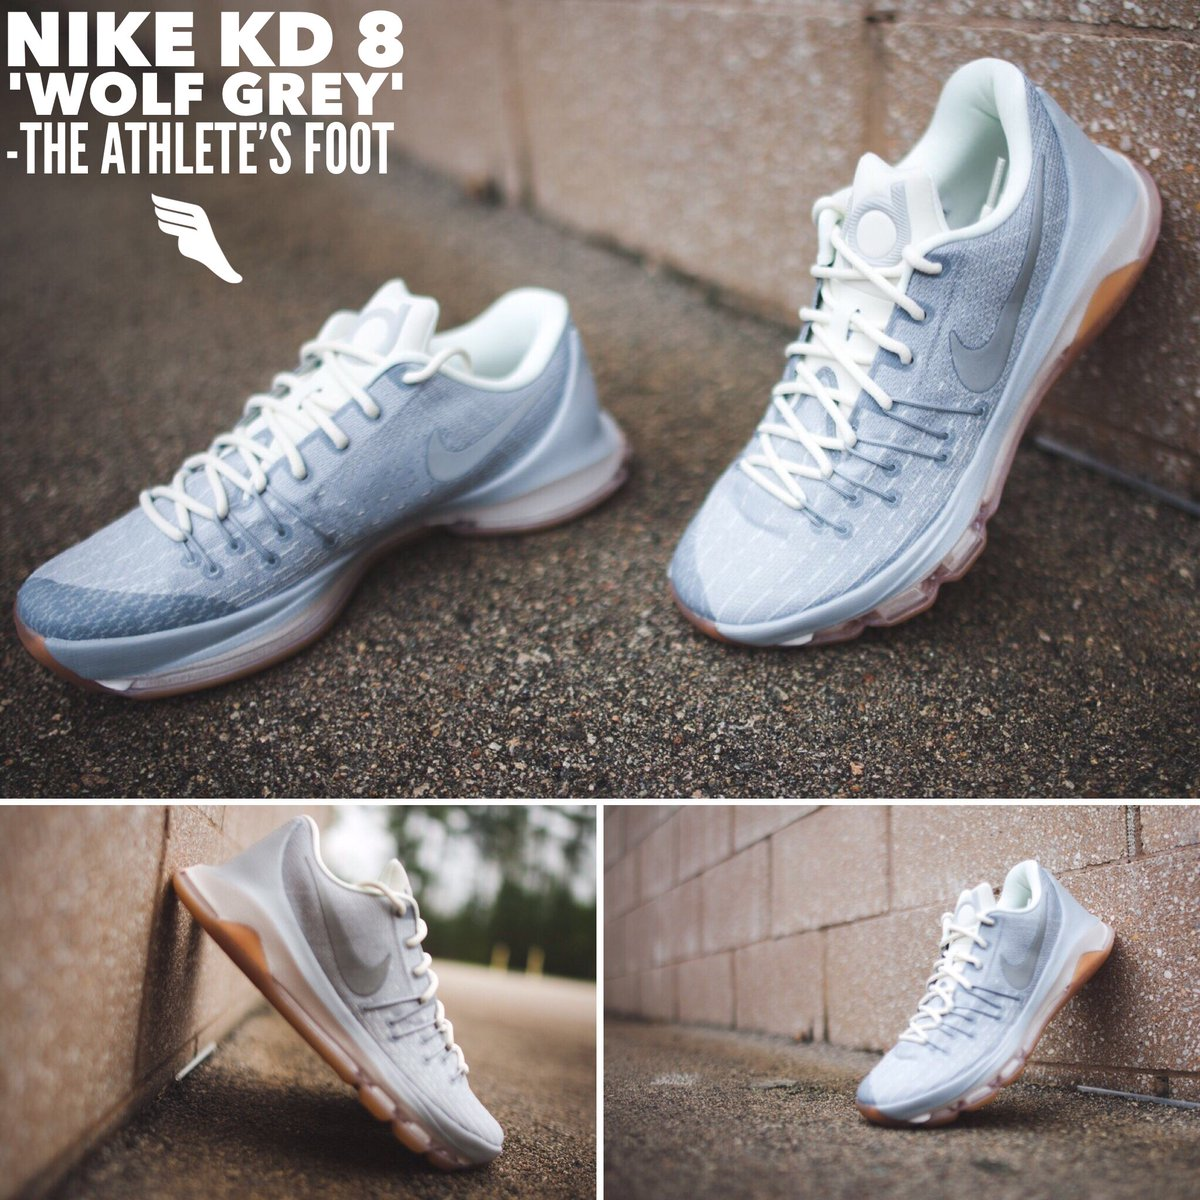 the best attitude 3b6ba 8abde ... official the athletes foot nc on twitter youll find the nike kd 8  easter at the